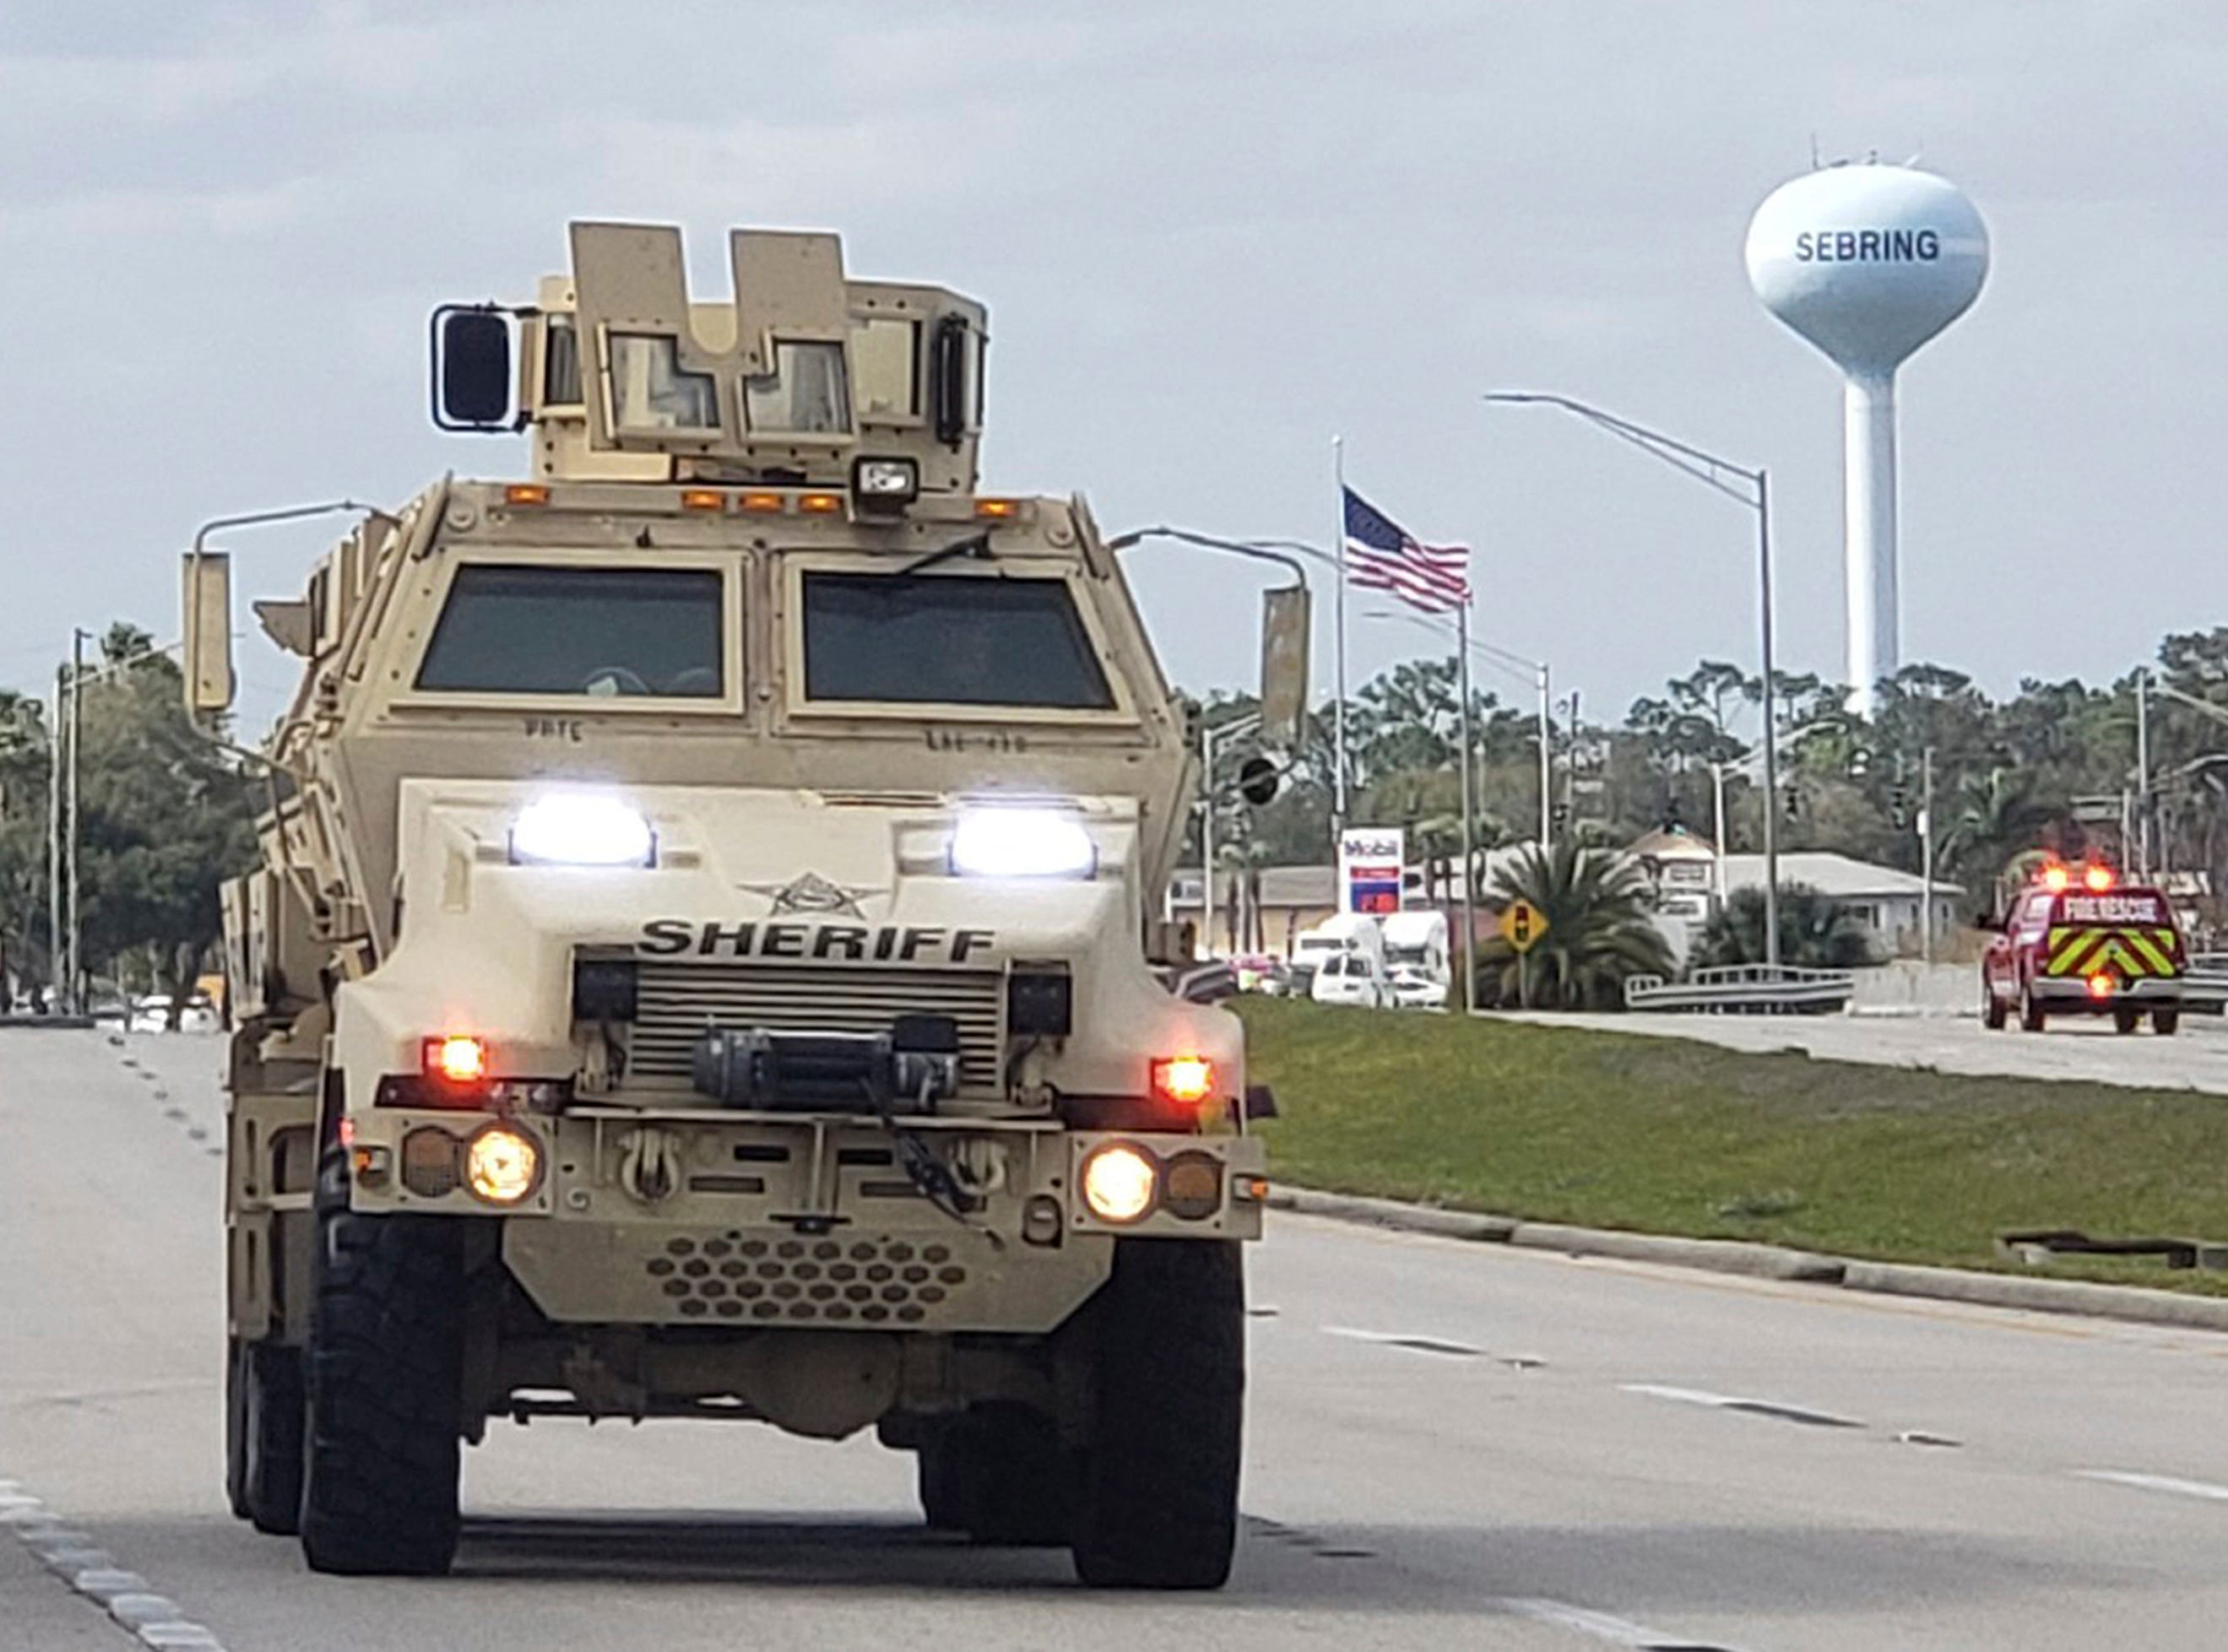 A sheriff's department armored vehicle arrives at a SunTrust Bank branch, Wednesday, Jan. 23, 2019, in Sebring, Fla. Authorities say they've arrested a man who fired shots inside the Florida bank.